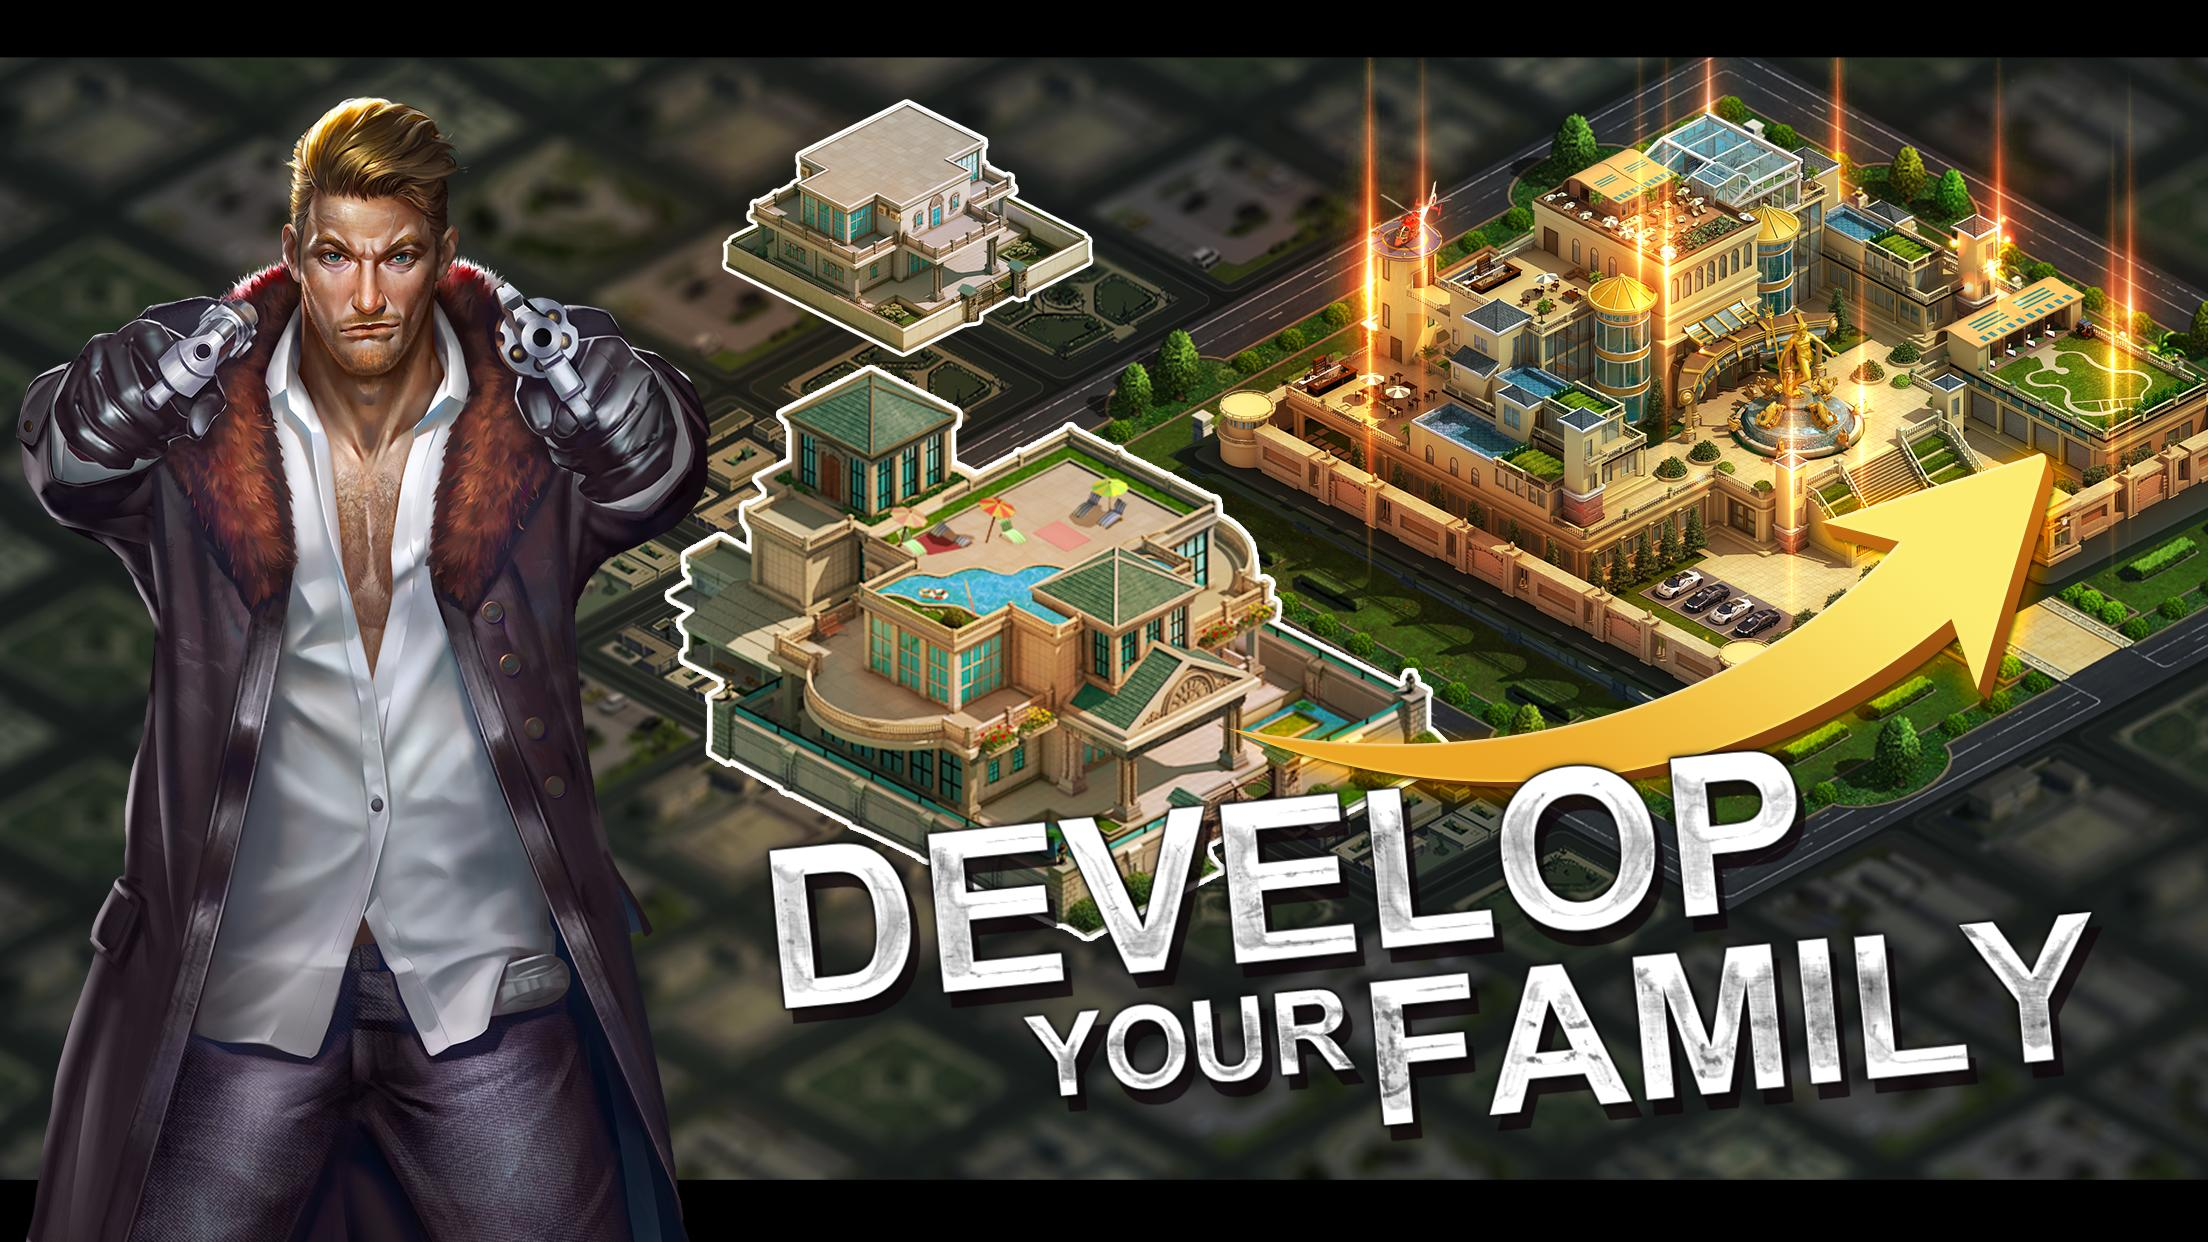 screen 2 - Mafia City Mod Apk - How To Get Unlimited Resources & Money